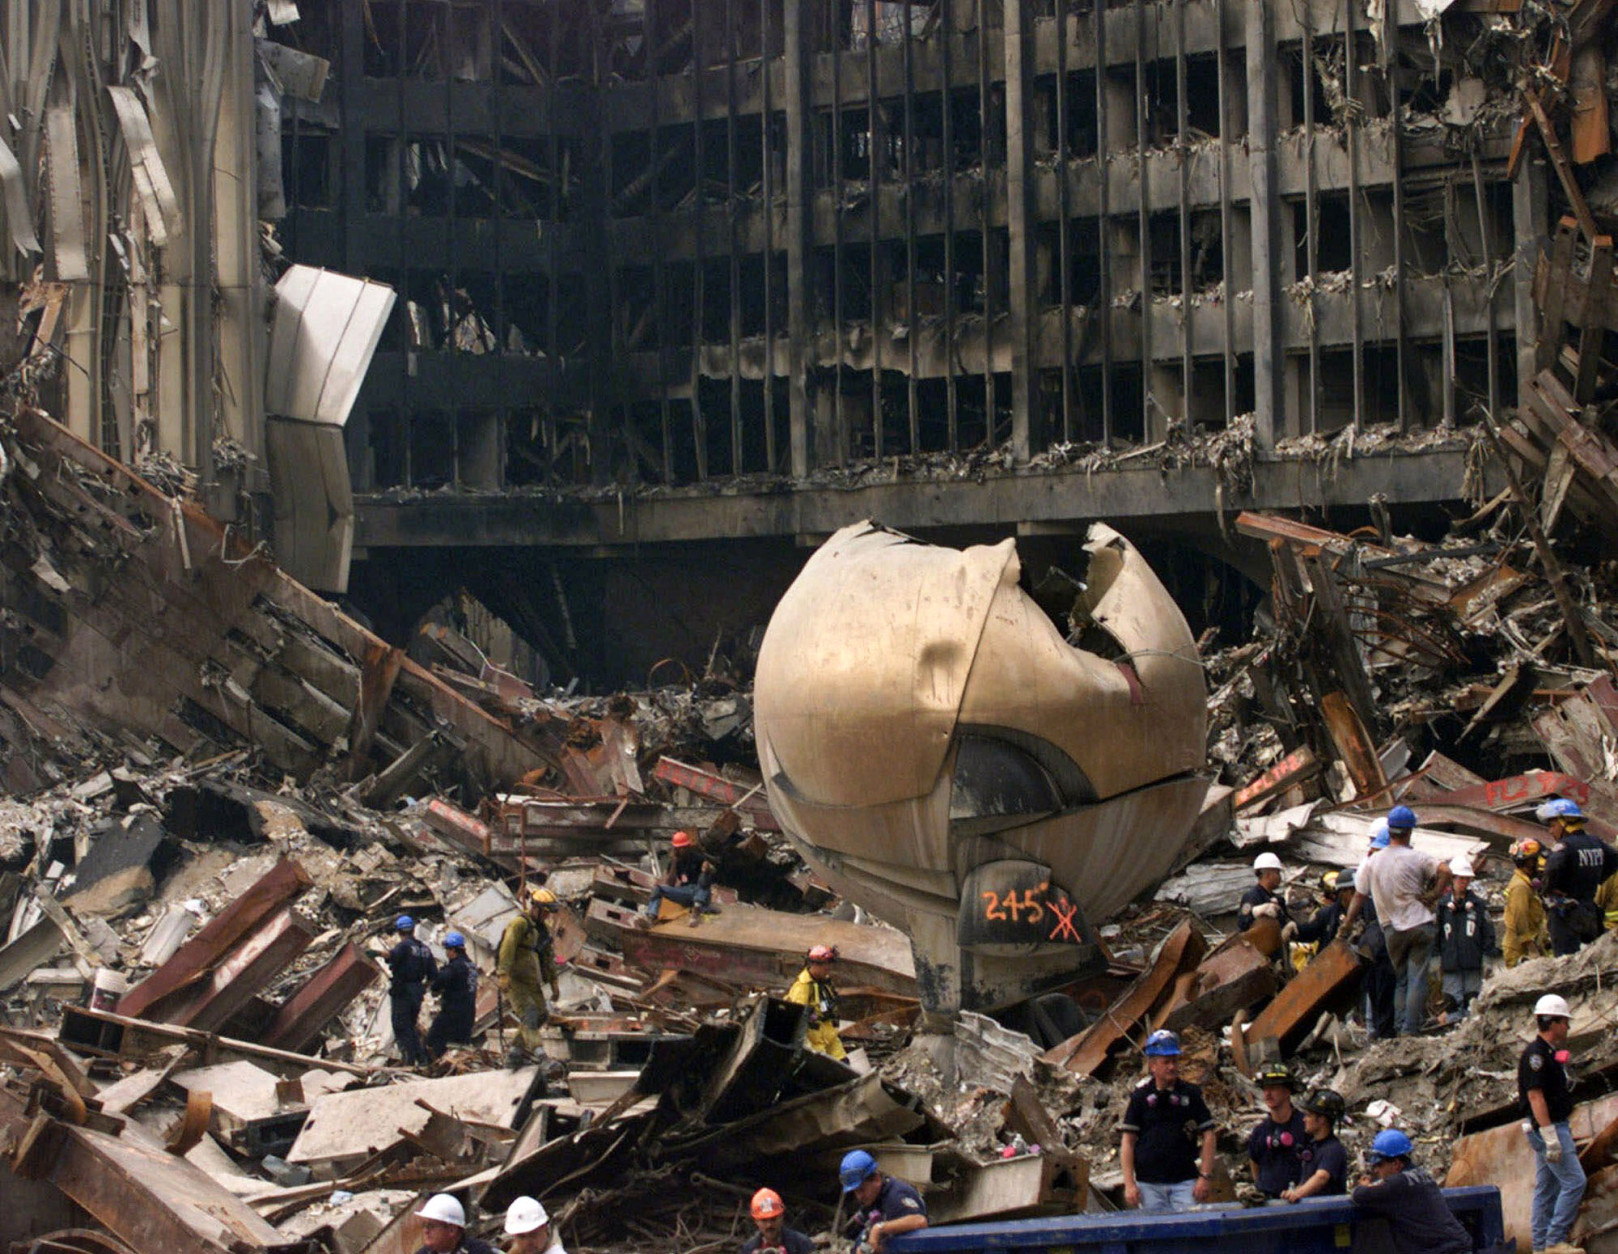 """FILE - In this Sept. 24, 2001 file photo, Fritz Koenig's """"The Sphere"""" outdoor sculpture that once graced the plaza at New York's World Trade Center lies in the wreckage following the Sept. 11, 2001, terrorist attacks. The 25-ton, bronze sphere ripped open by the collapsing towers is returning to a spot overlooking the rebuilt site. The Port Authority of New York and New Jersey on Thursday July 21, 2016, approved plans to move the Koenig Sphere from its temporary place in Battery Park at Manhattan's southern tip. The sculpture will grace the new Liberty Park overlooking the 9/11 memorial. No date has yet been set for the move. (AP Photo/Ted Warren, Pool/File)"""